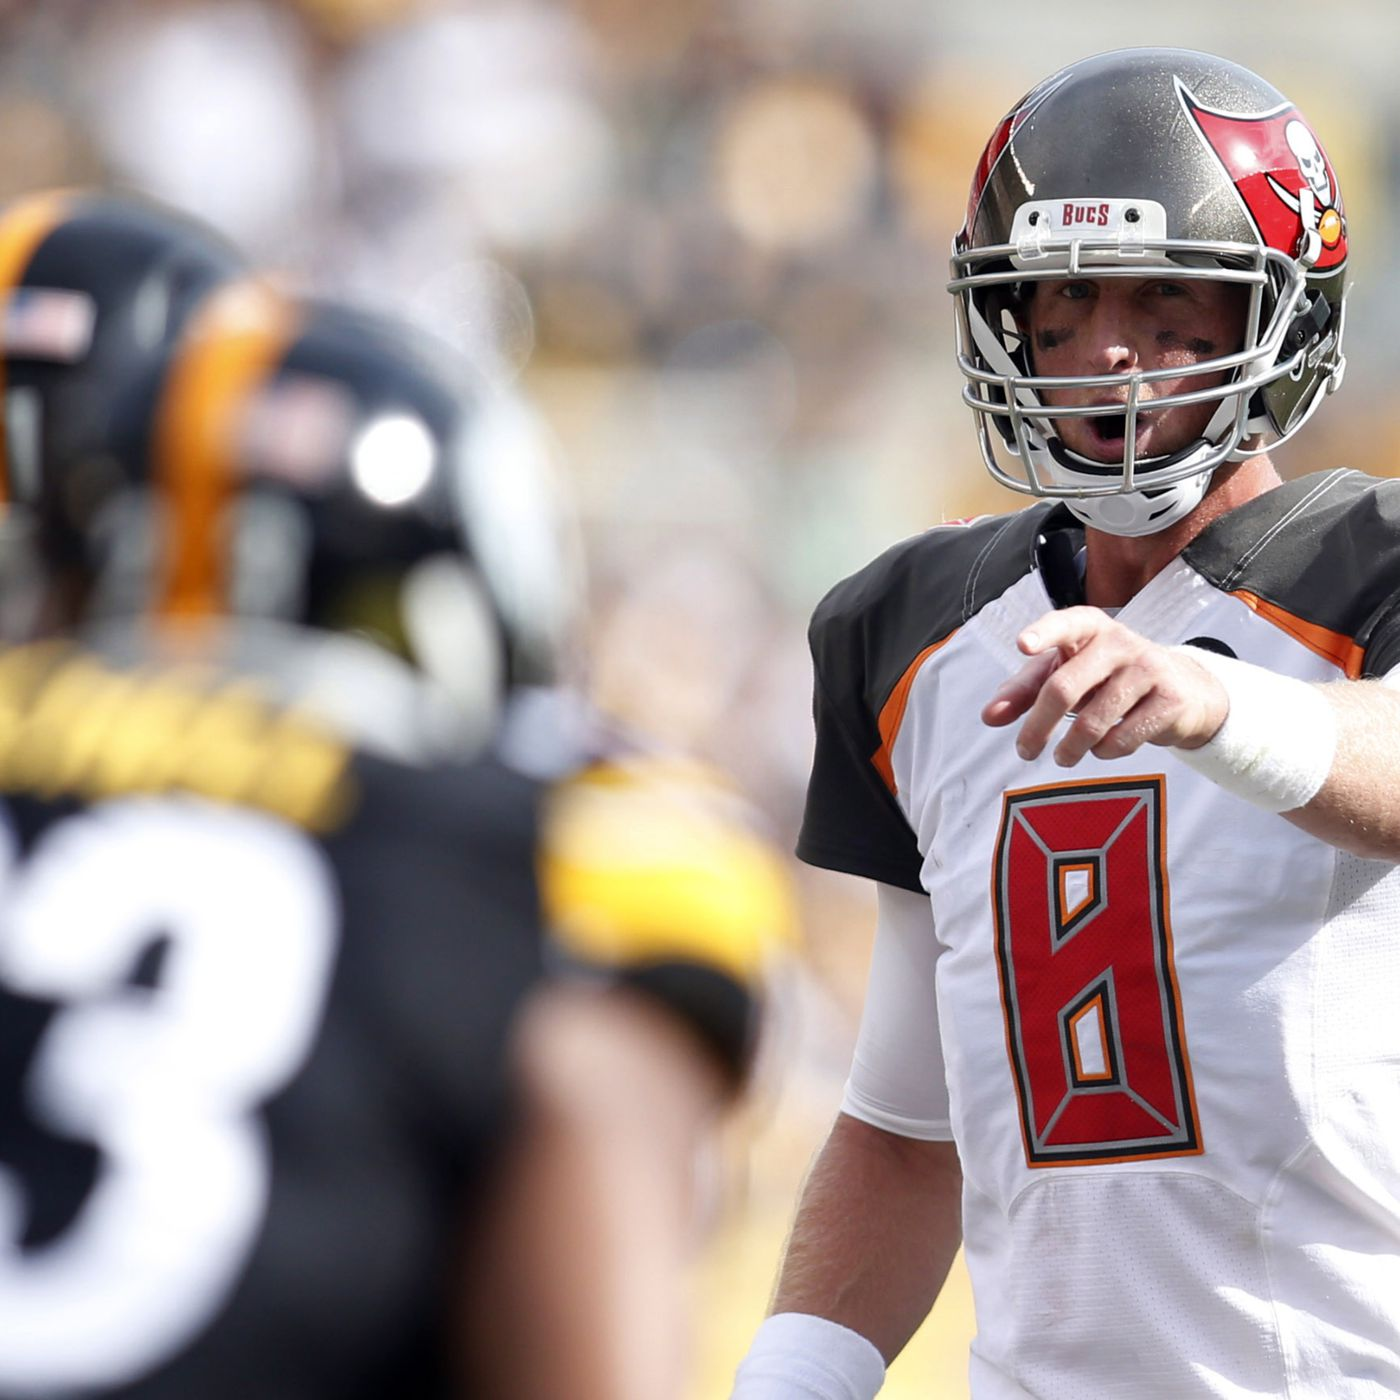 brand new 40675 79929 Steelers defense exposed again in loss to Tampa Bay - Behind ...